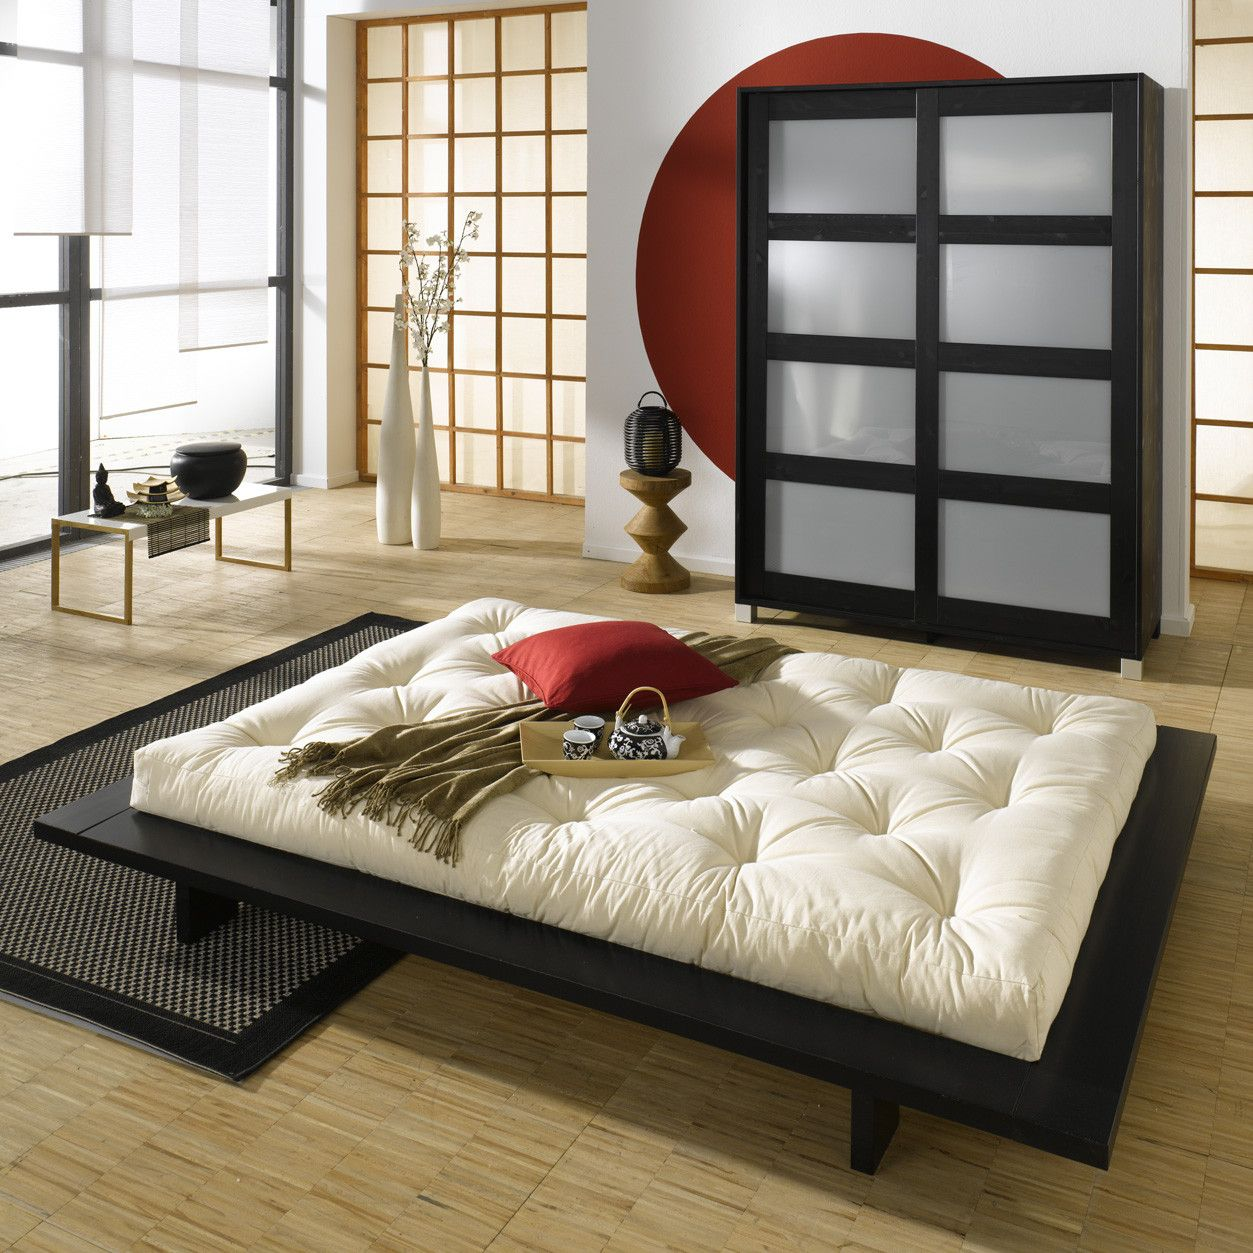 Japanese bed frame design - Japan Futons Ngram Japan Futon Bed Frame